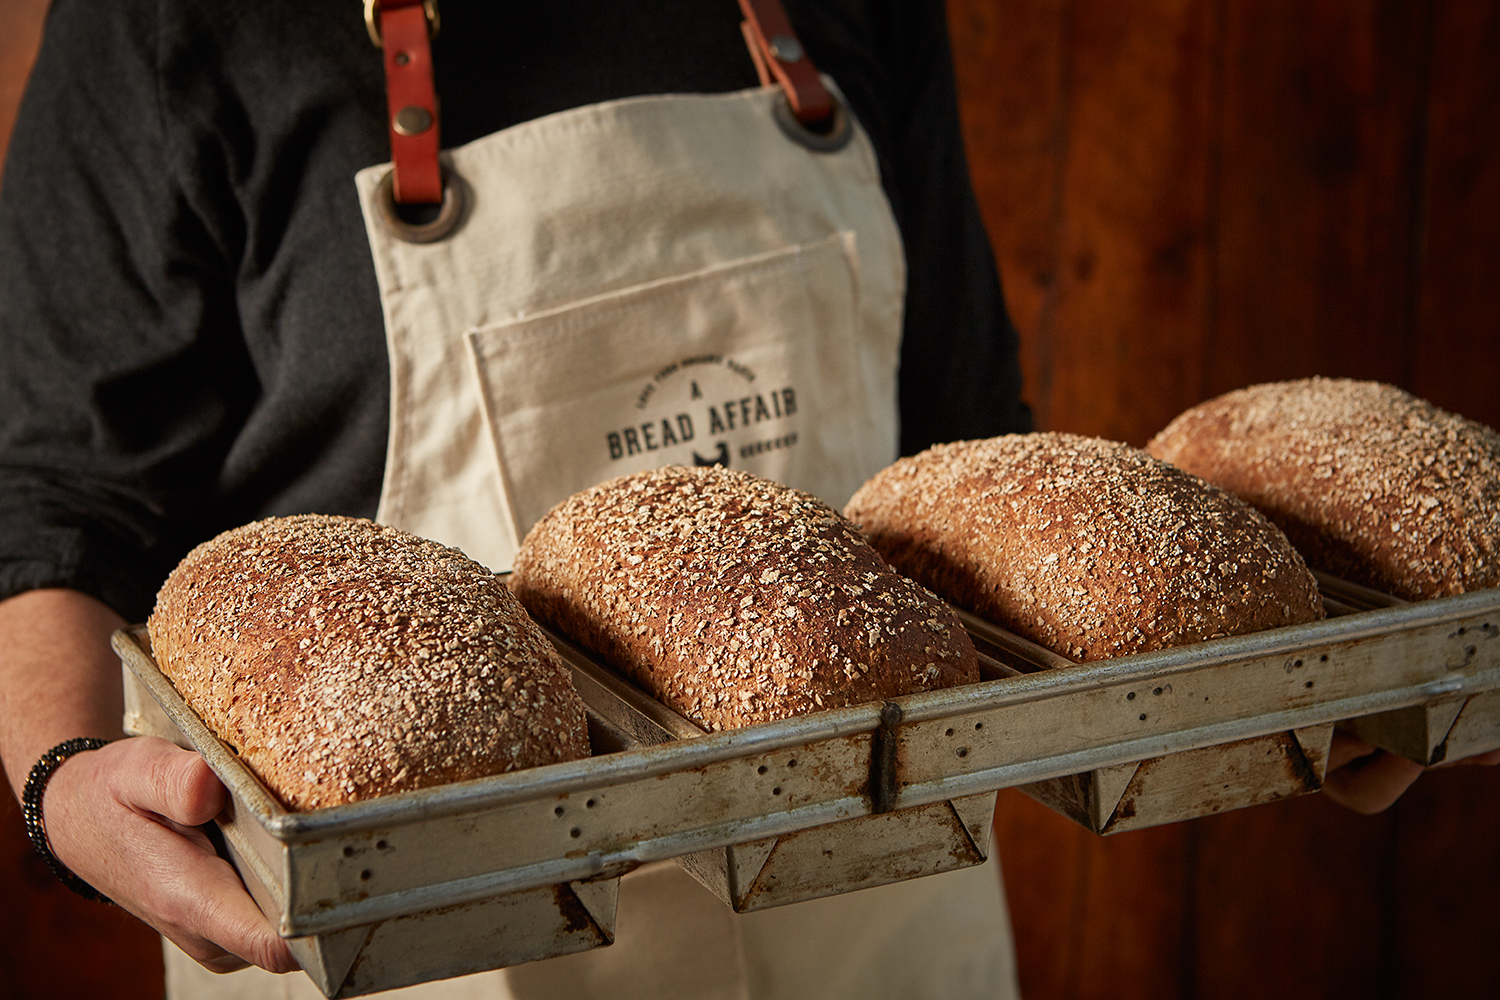 3 Excellent Reasons to Get Your Bread From A Bread Affair